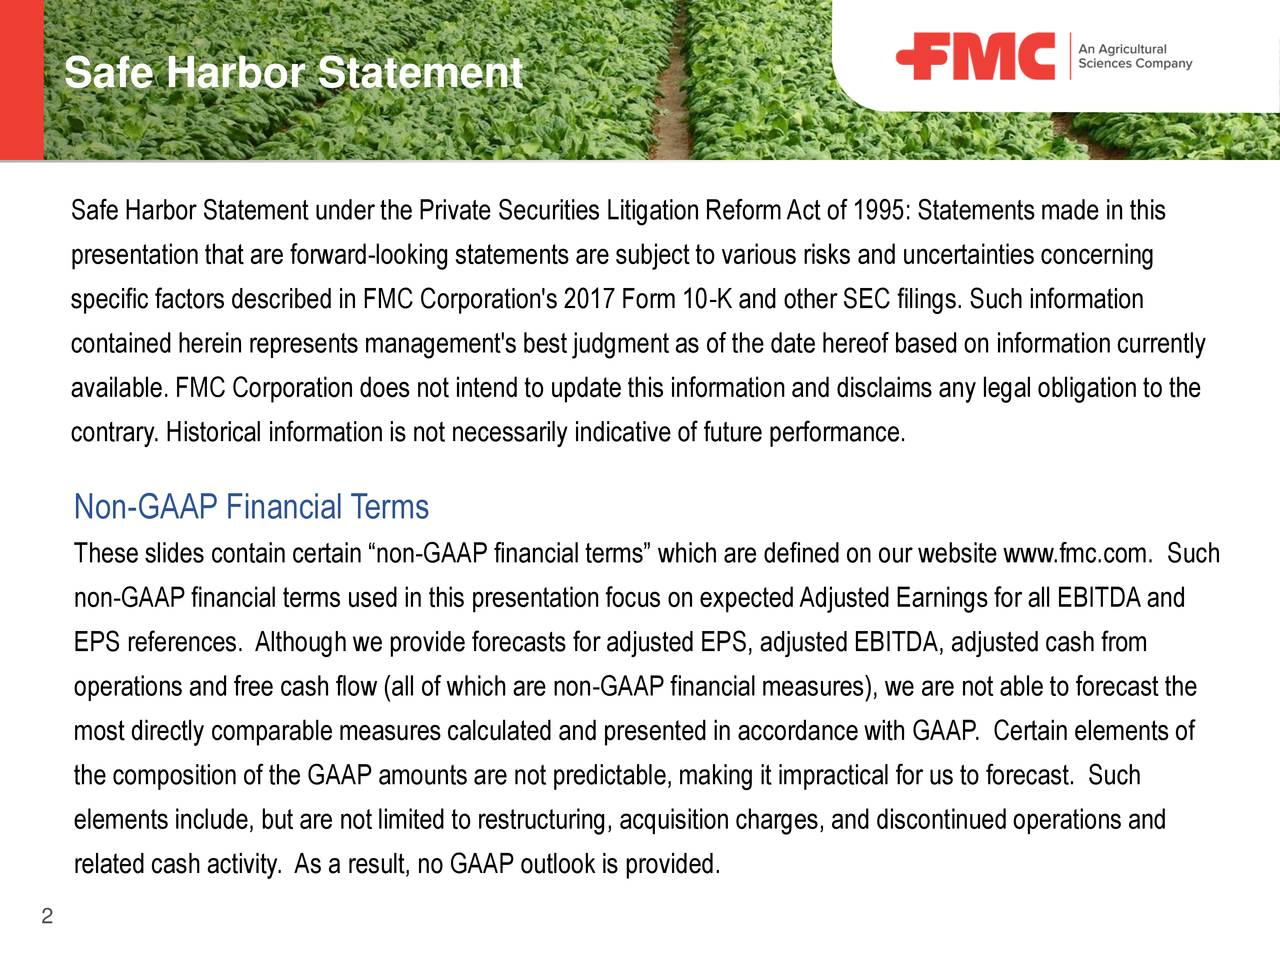 "under the Private Securities Litigation ReformAct of 1995: Statements made in this presentation that are forward-looking statements are subject to various risks and uncertainties concerning specific factors described in FMC Corporation's 2017 Form 10-K and other SEC filings. Such information contained herein represents management's best judgment as of the date hereof based on information currently available. FMC Corporation does not intend to update this information and disclaims any legal obligation to the contrary. Historical information is not necessarily indicative of future performance. Non-GAAP Financial Terms These slides contain certain ""non-GAAP financial terms"" which are defined on our website www.fmc.com. Such non-GAAP financial terms used in this presentation focus on expectedAdjusted Earnings for all EBITDAand EPS references. Although we provide forecasts for adjusted EPS, adjusted EBITDA, adjusted cash from operations and free cash flow (all of which are non-GAAP financial measures), we are not able to forecast the most directly comparable measures calculated and presented in accordance with GAAP. Certain elements of the composition of the GAAP amounts are not predictable, making it impractical for us to forecast. Such elements include, but are not limited to restructuring, acquisition charges, and discontinued operations and related cash activity. As a result, no GAAP outlook is provided. 2"